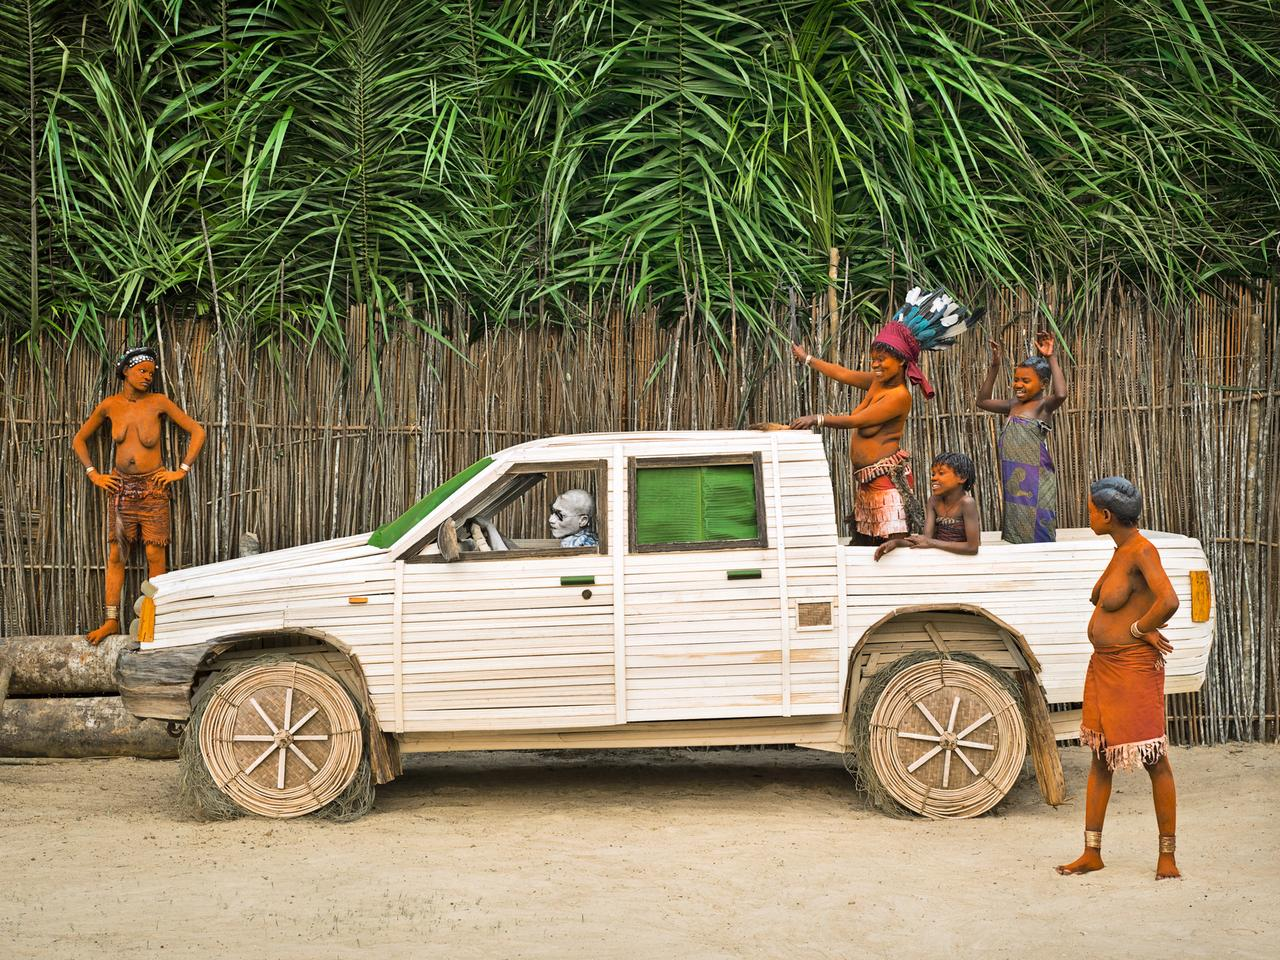 Twenty-year-old Walé Mpia was grateful to have been assisted by Patrick Willocq, who offered her copper bracelets to help pay for ending her seclusion. On the day of the laying of her bracelets, she returned to her village by car, with Patrick driving; she wanted a picture recreating this event.